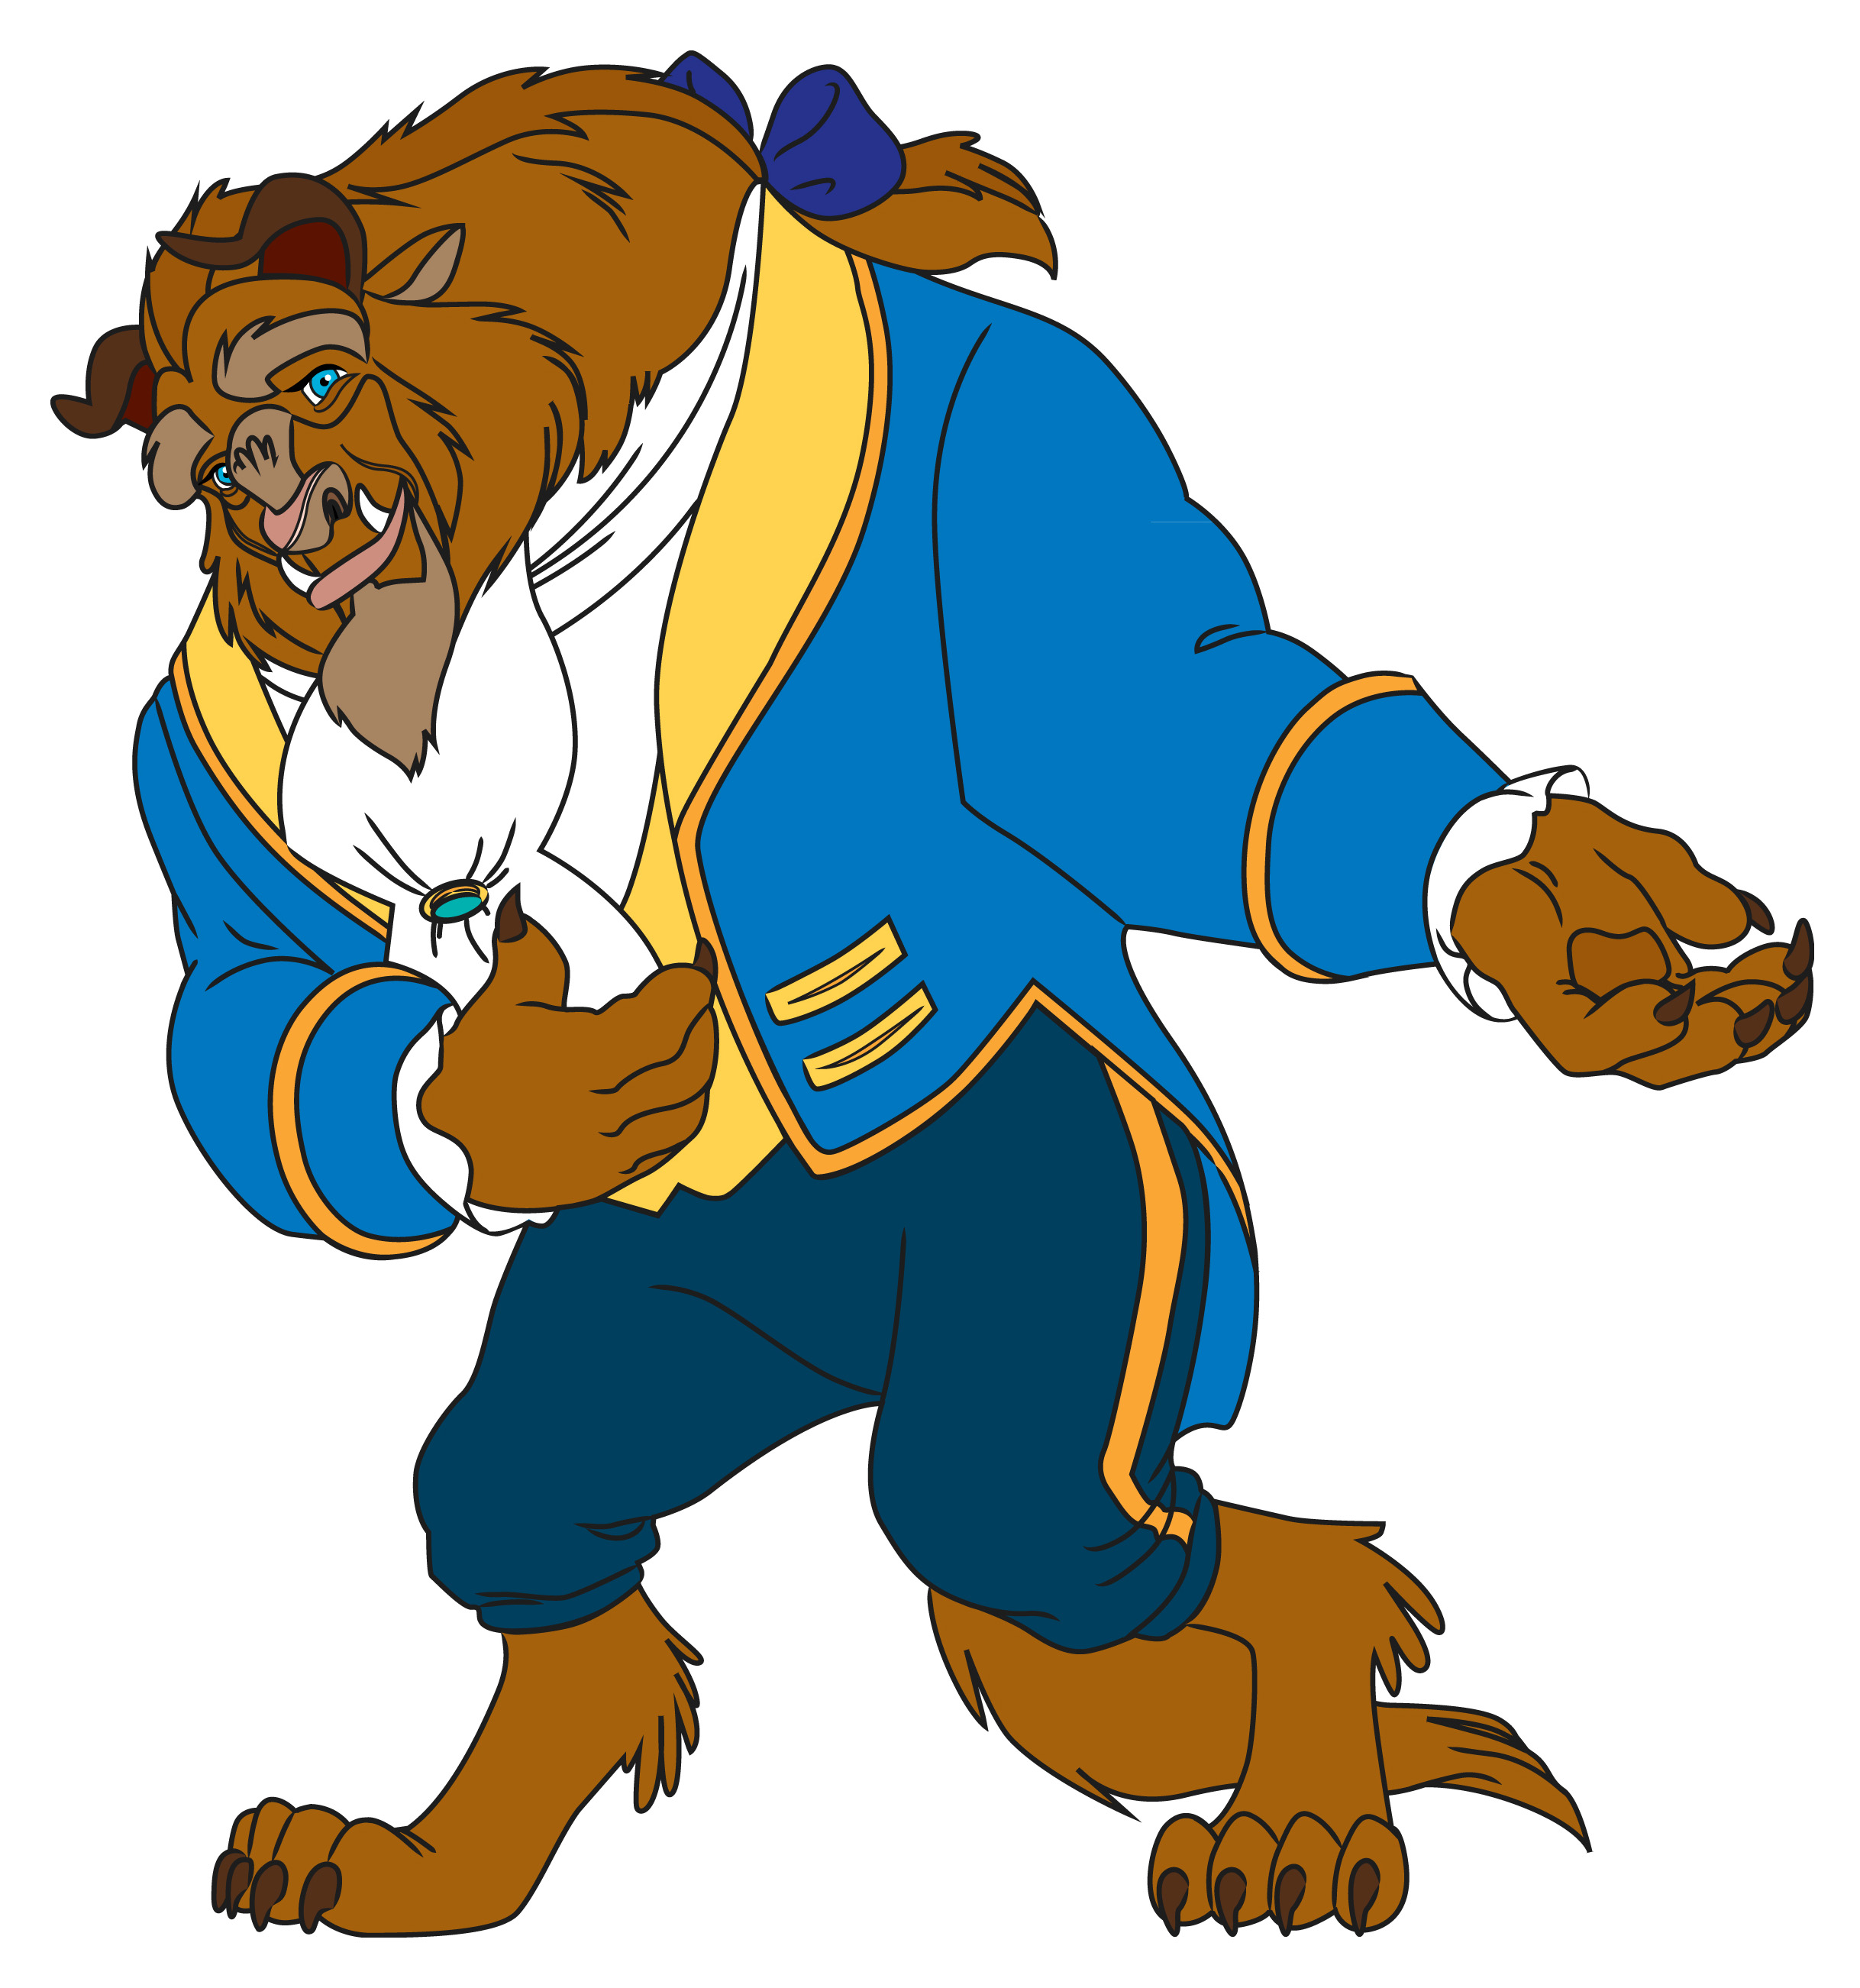 How to Draw the Beast from Beauty and the Beast: 9 Steps